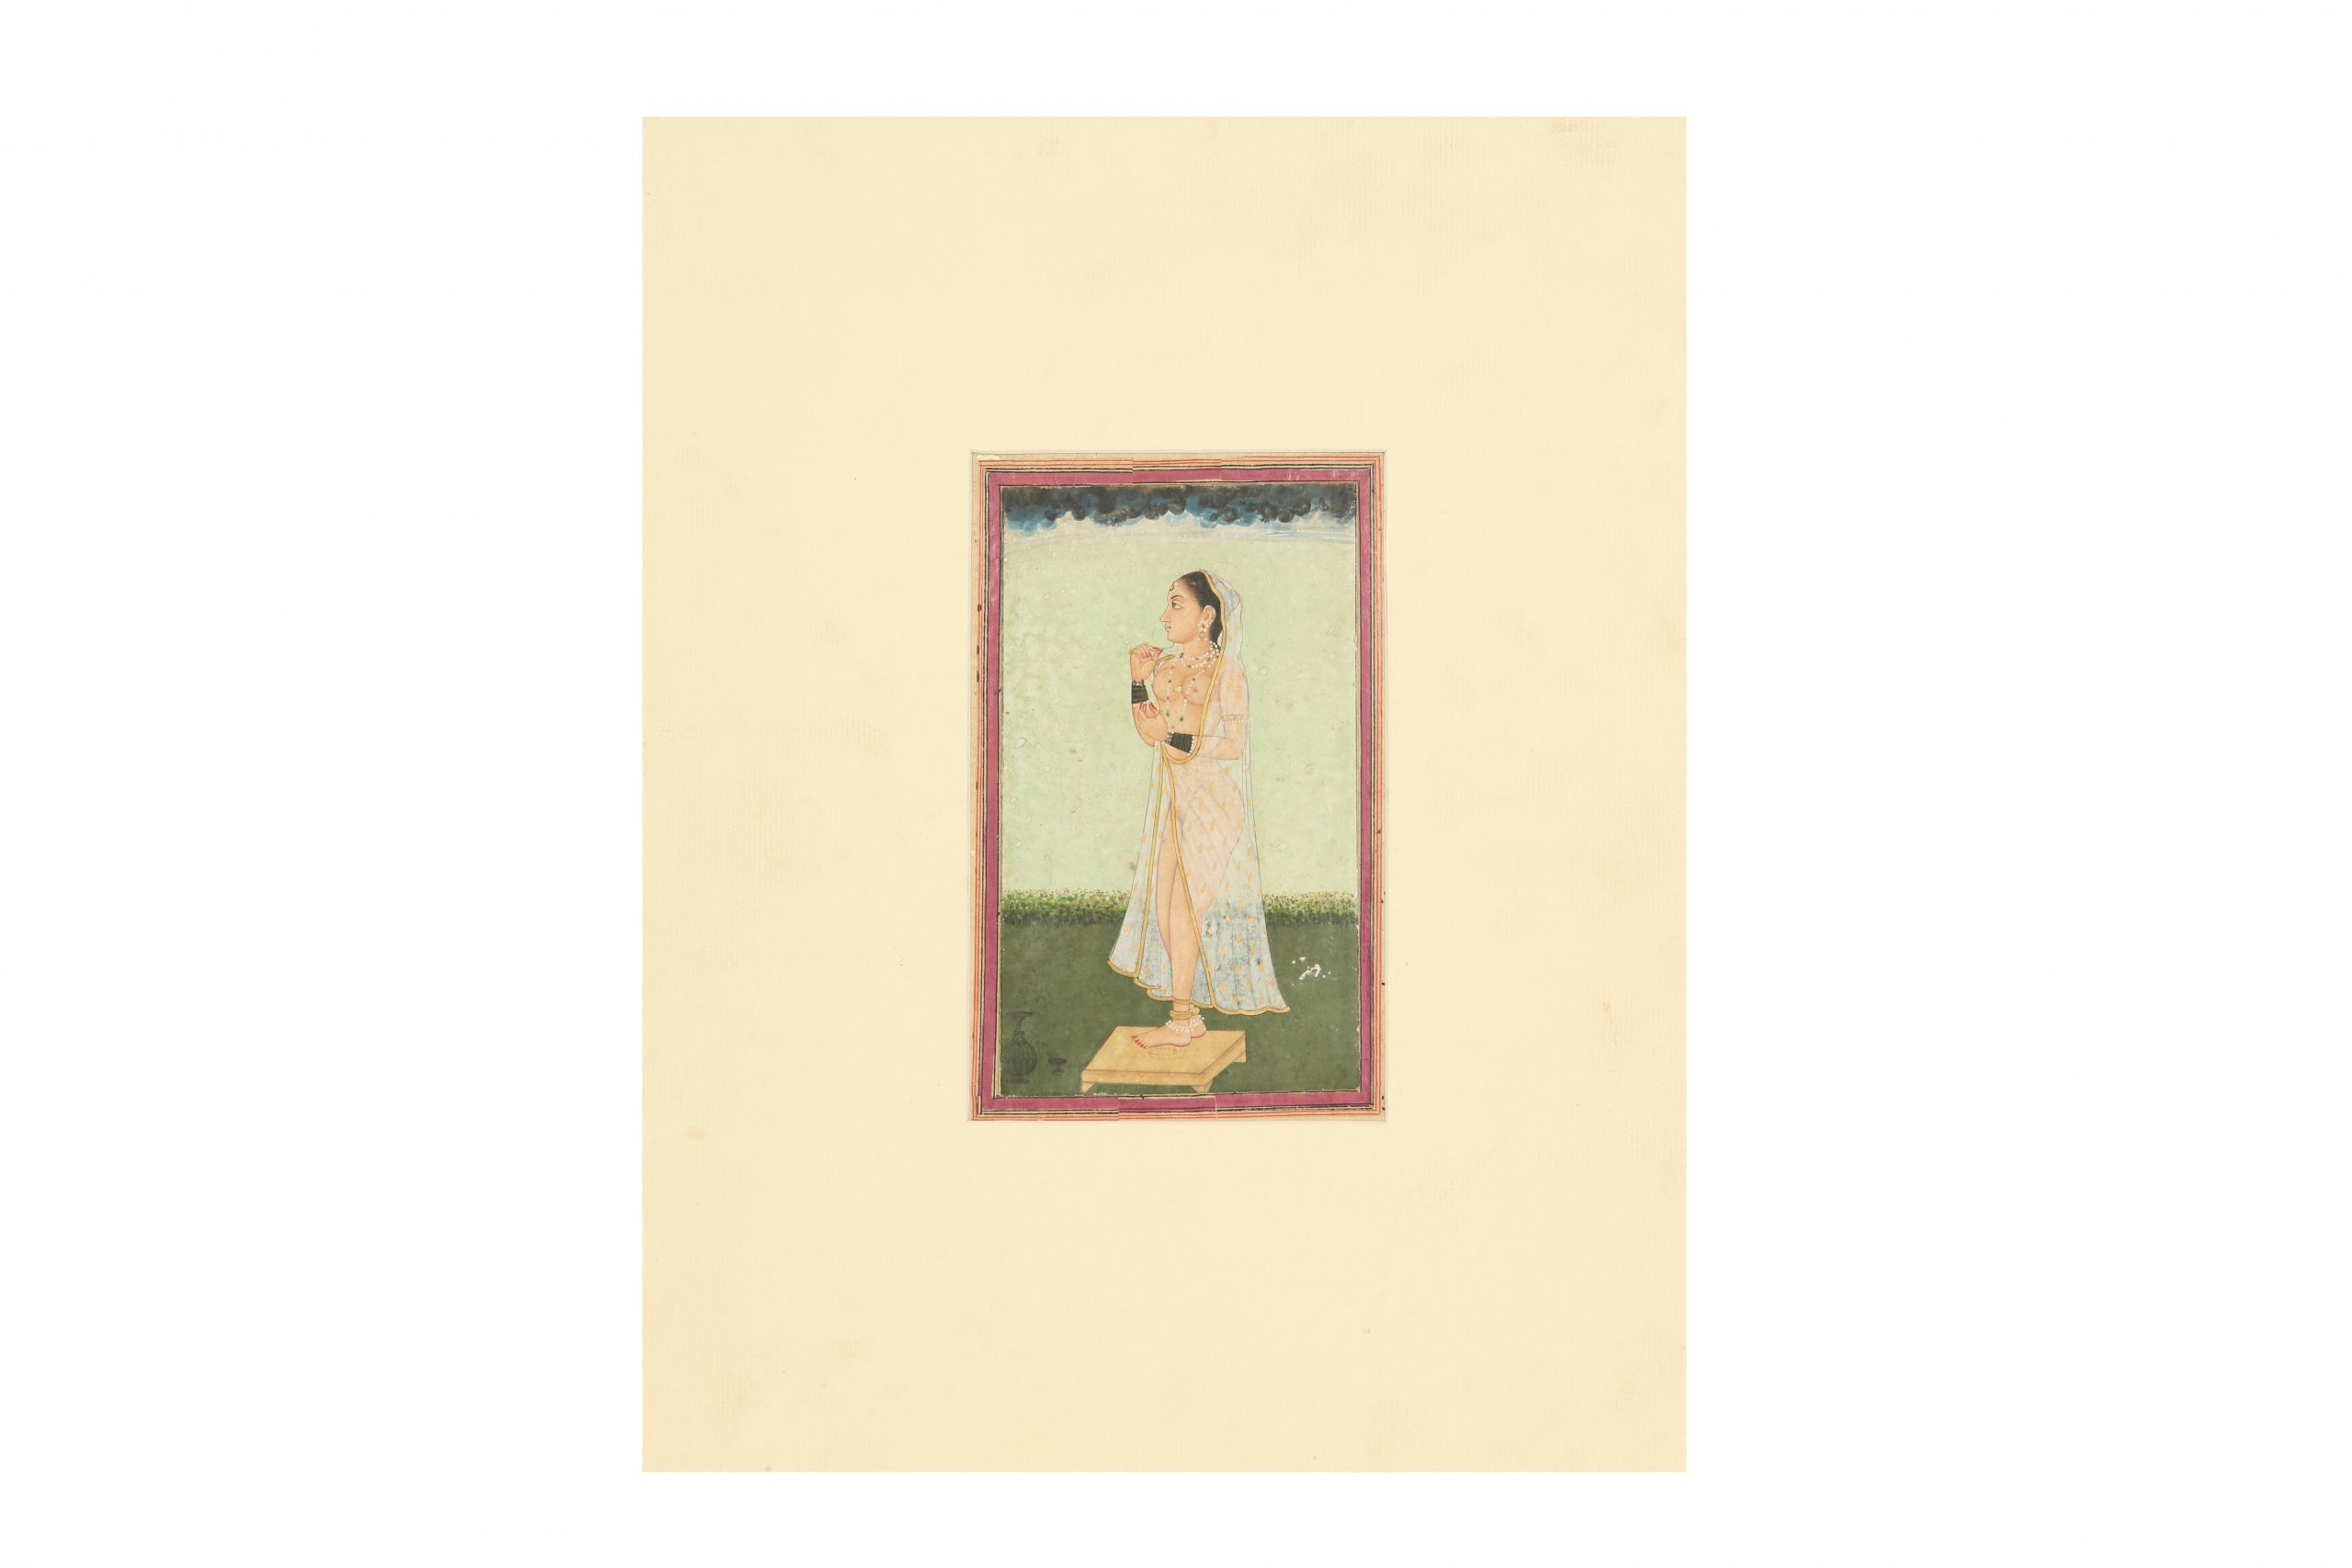 A lady at her toilette. Provincial Mughal school, possibly Awadh (Oudh), Northern India, late 18th - early 19th century Estimate £1,500 - £2,000